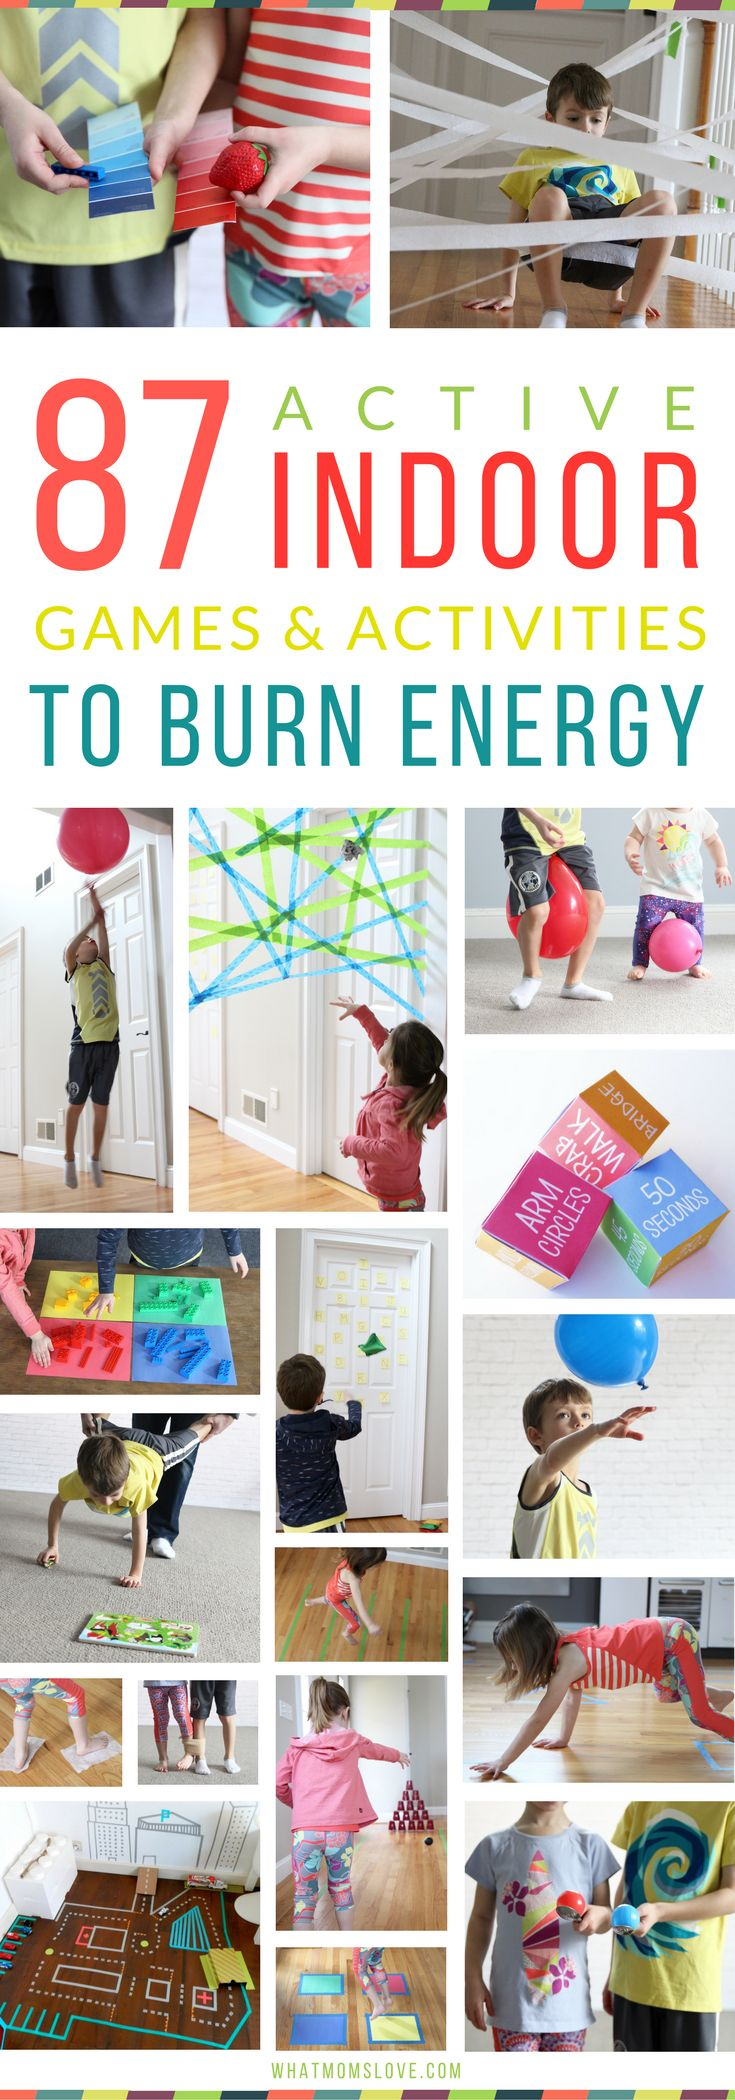 Best Active Indoor Activities For Kids | Fun Gross Motor Games and Creative Ideas For Winter (snow days!), Spring (rainy days!) or for when Cabin Fever strikes | Awesome Boredom Busters and Brain Breaks for Toddlers, Preschool and beyond